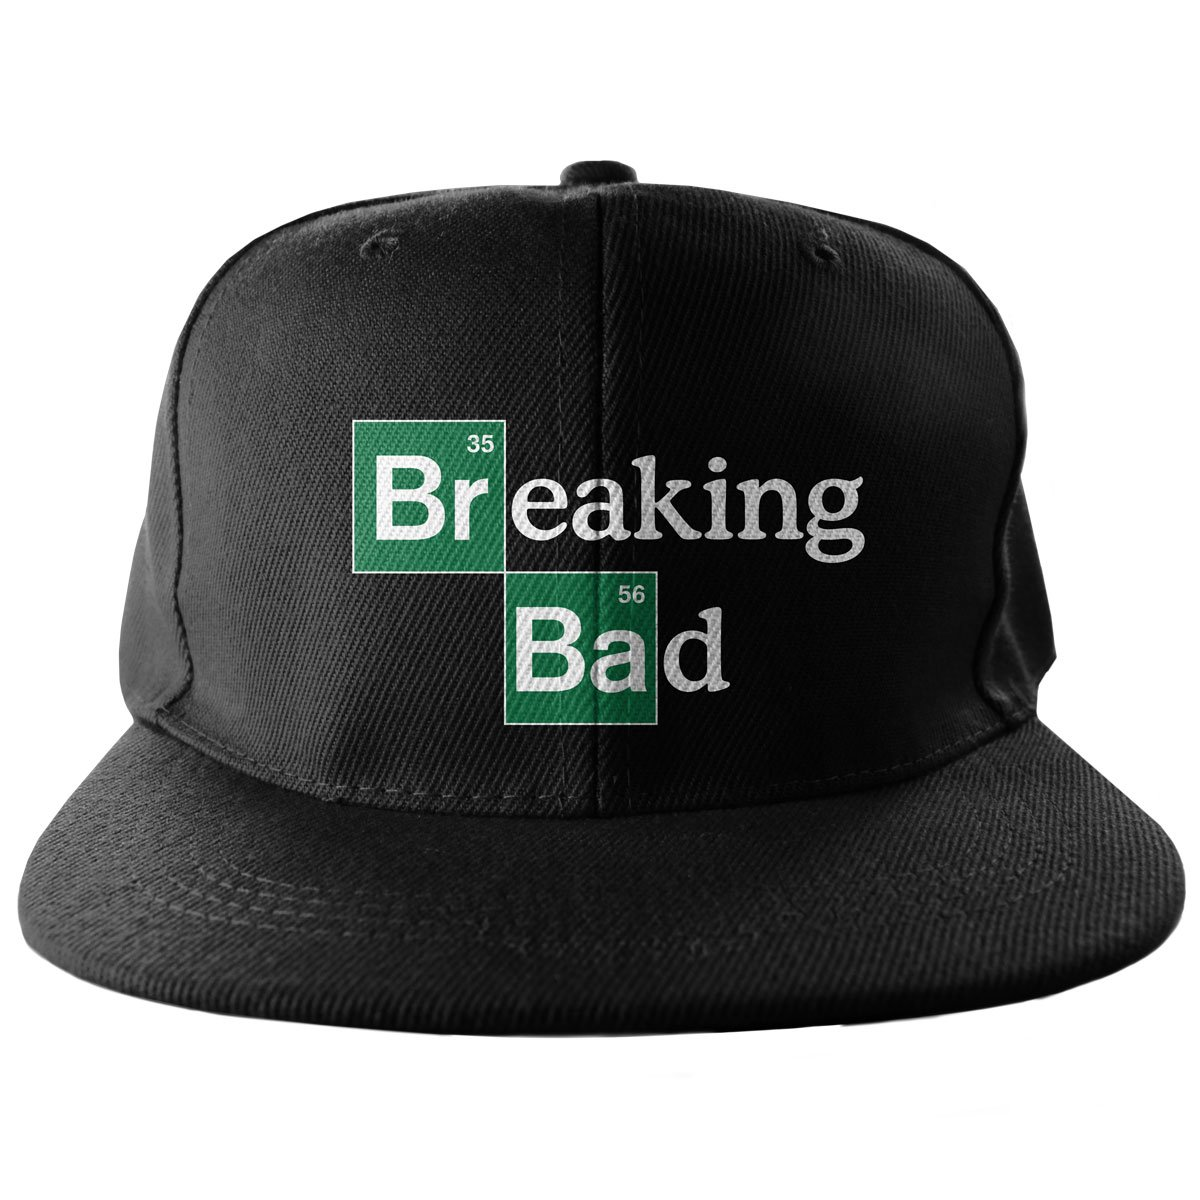 Breaking Bad Baseball Cap Snapback Cap Logo Embroidered Official Black at Amazon Mens Clothing store: